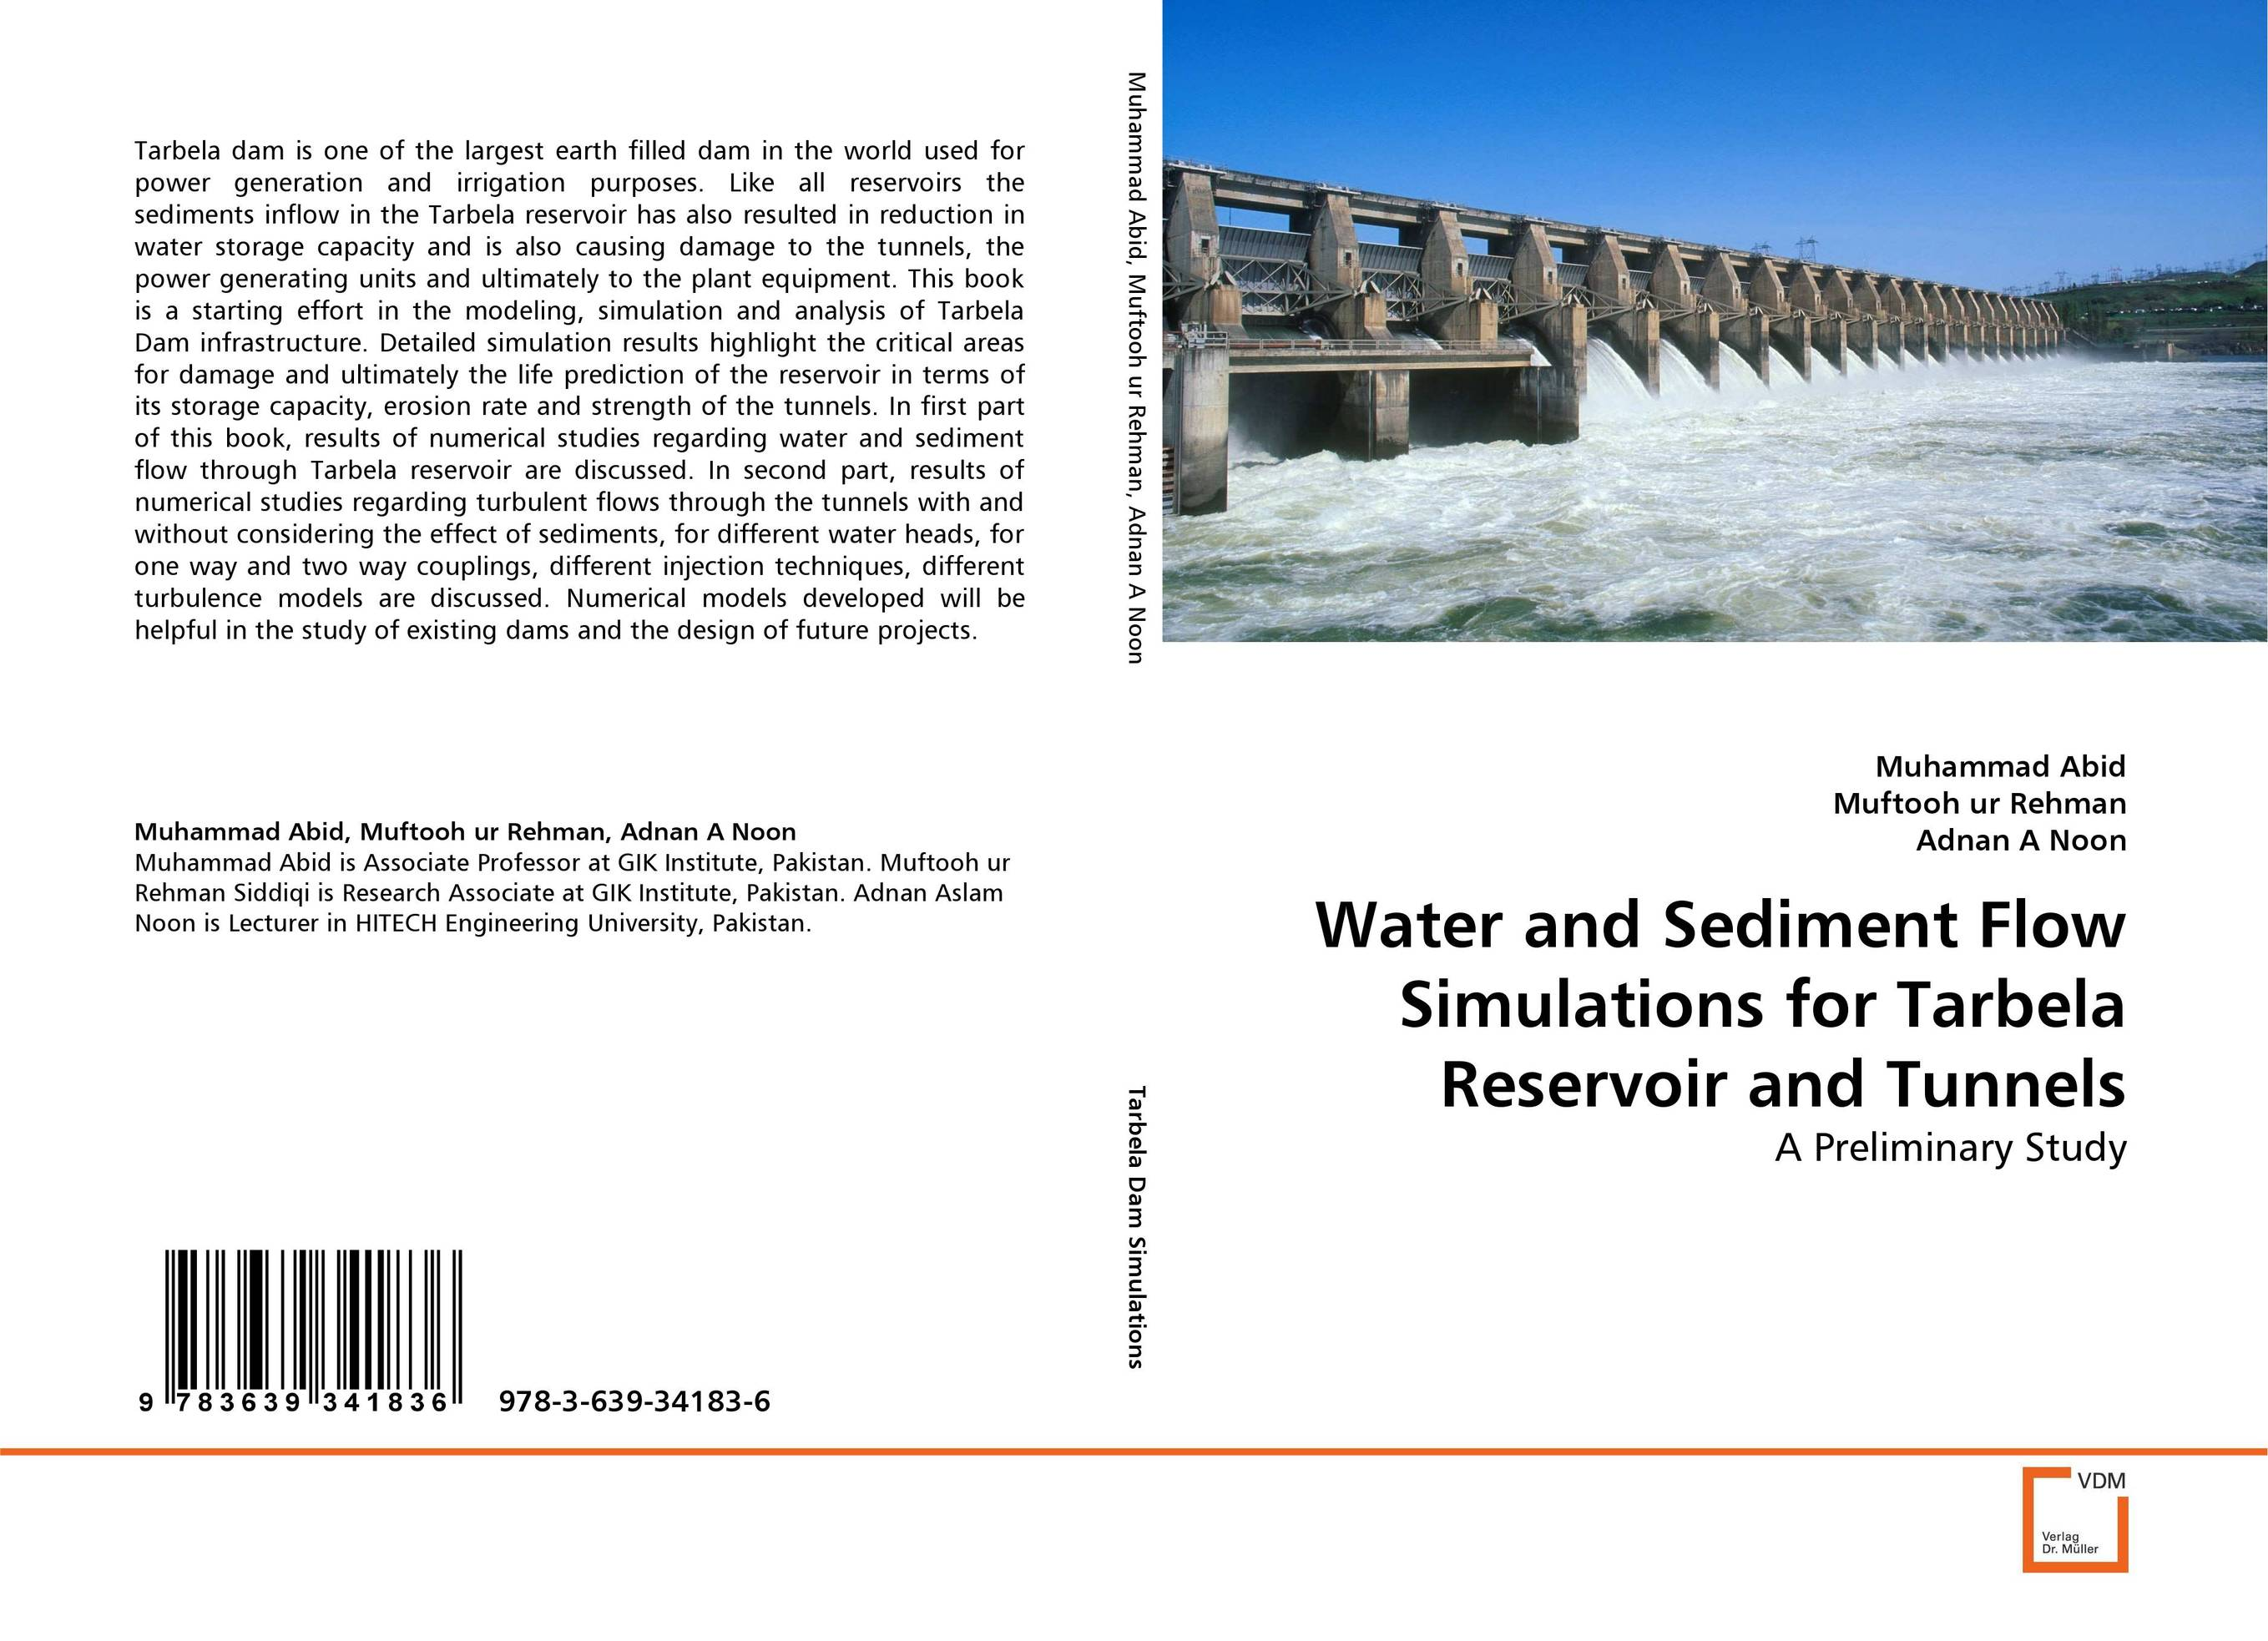 Water and Sediment Flow Simulations for Tarbela Reservoir and Tunnels bride of the water god v 3